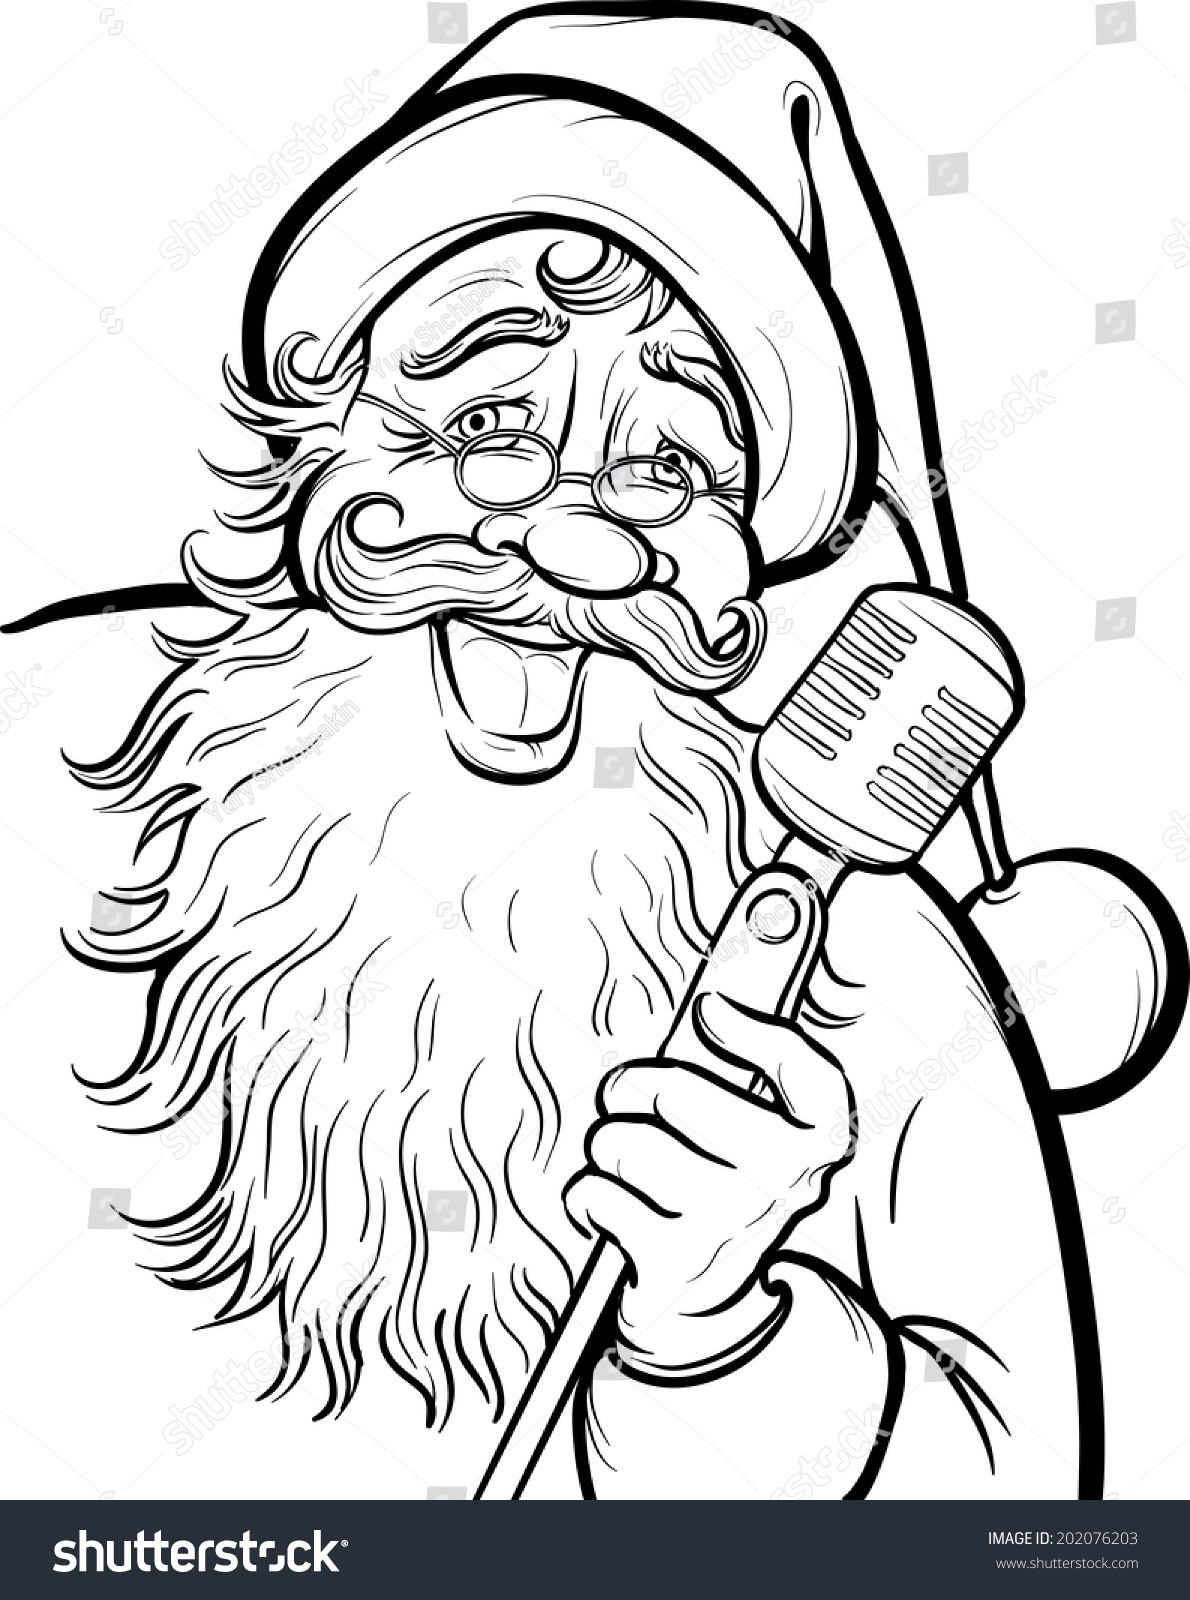 Christmas Coloring Page Singing Santa Claus Stock Vector 202076203 ...